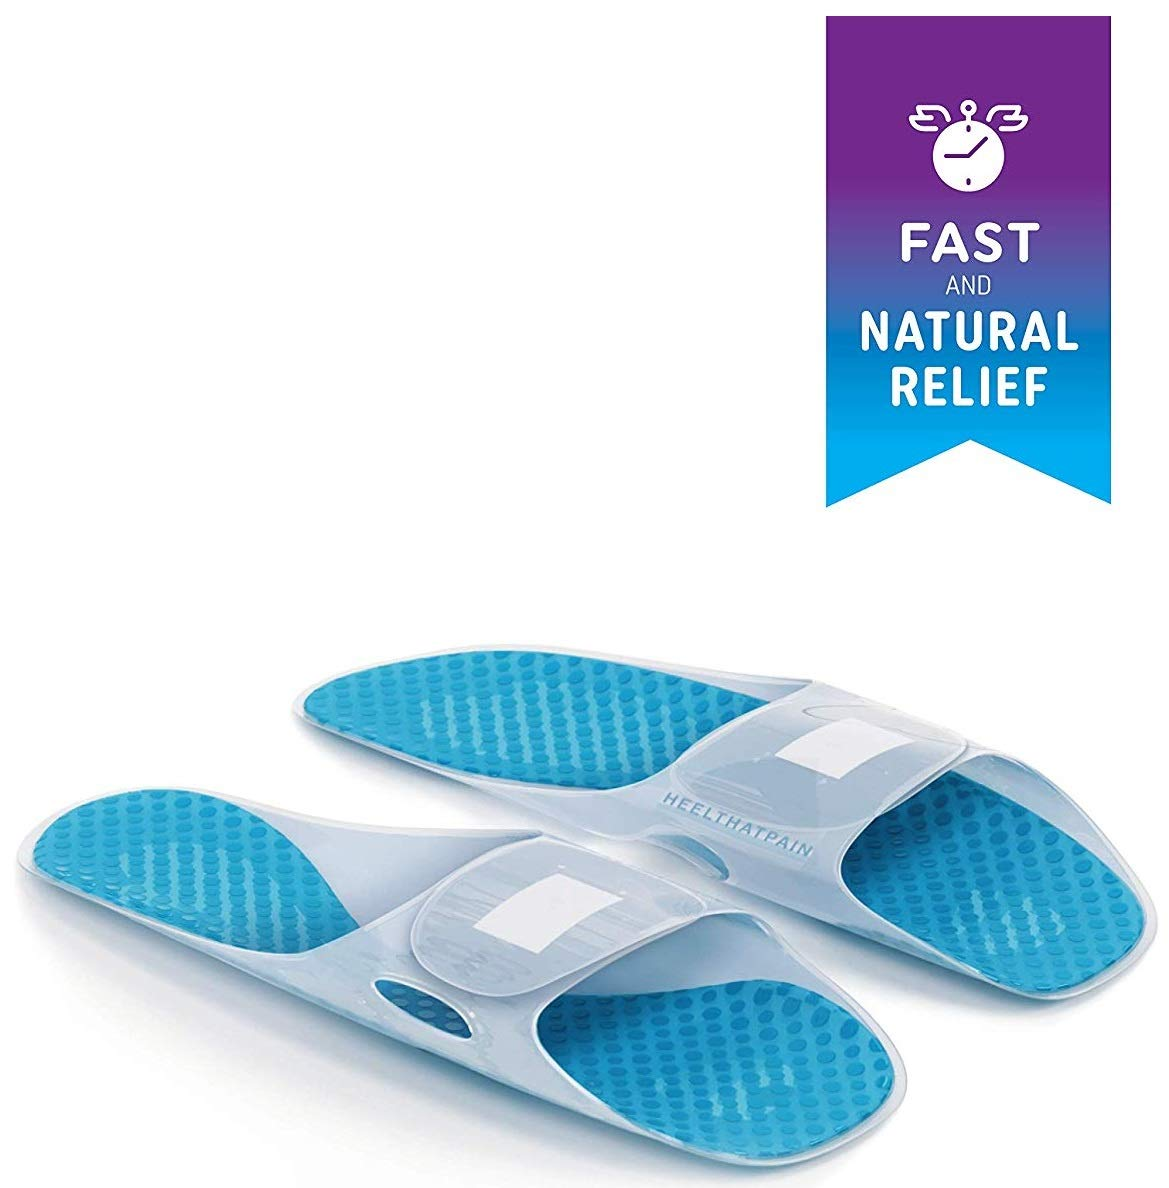 Heel That Pain Plantar Fasciitis Ice Pack and Heat Therapy Slippers- Fast and Natural Pain Relief from Heel Toe Foot Pain, Inflammation, and Swelling, One Size Fits All by Heel That Pain